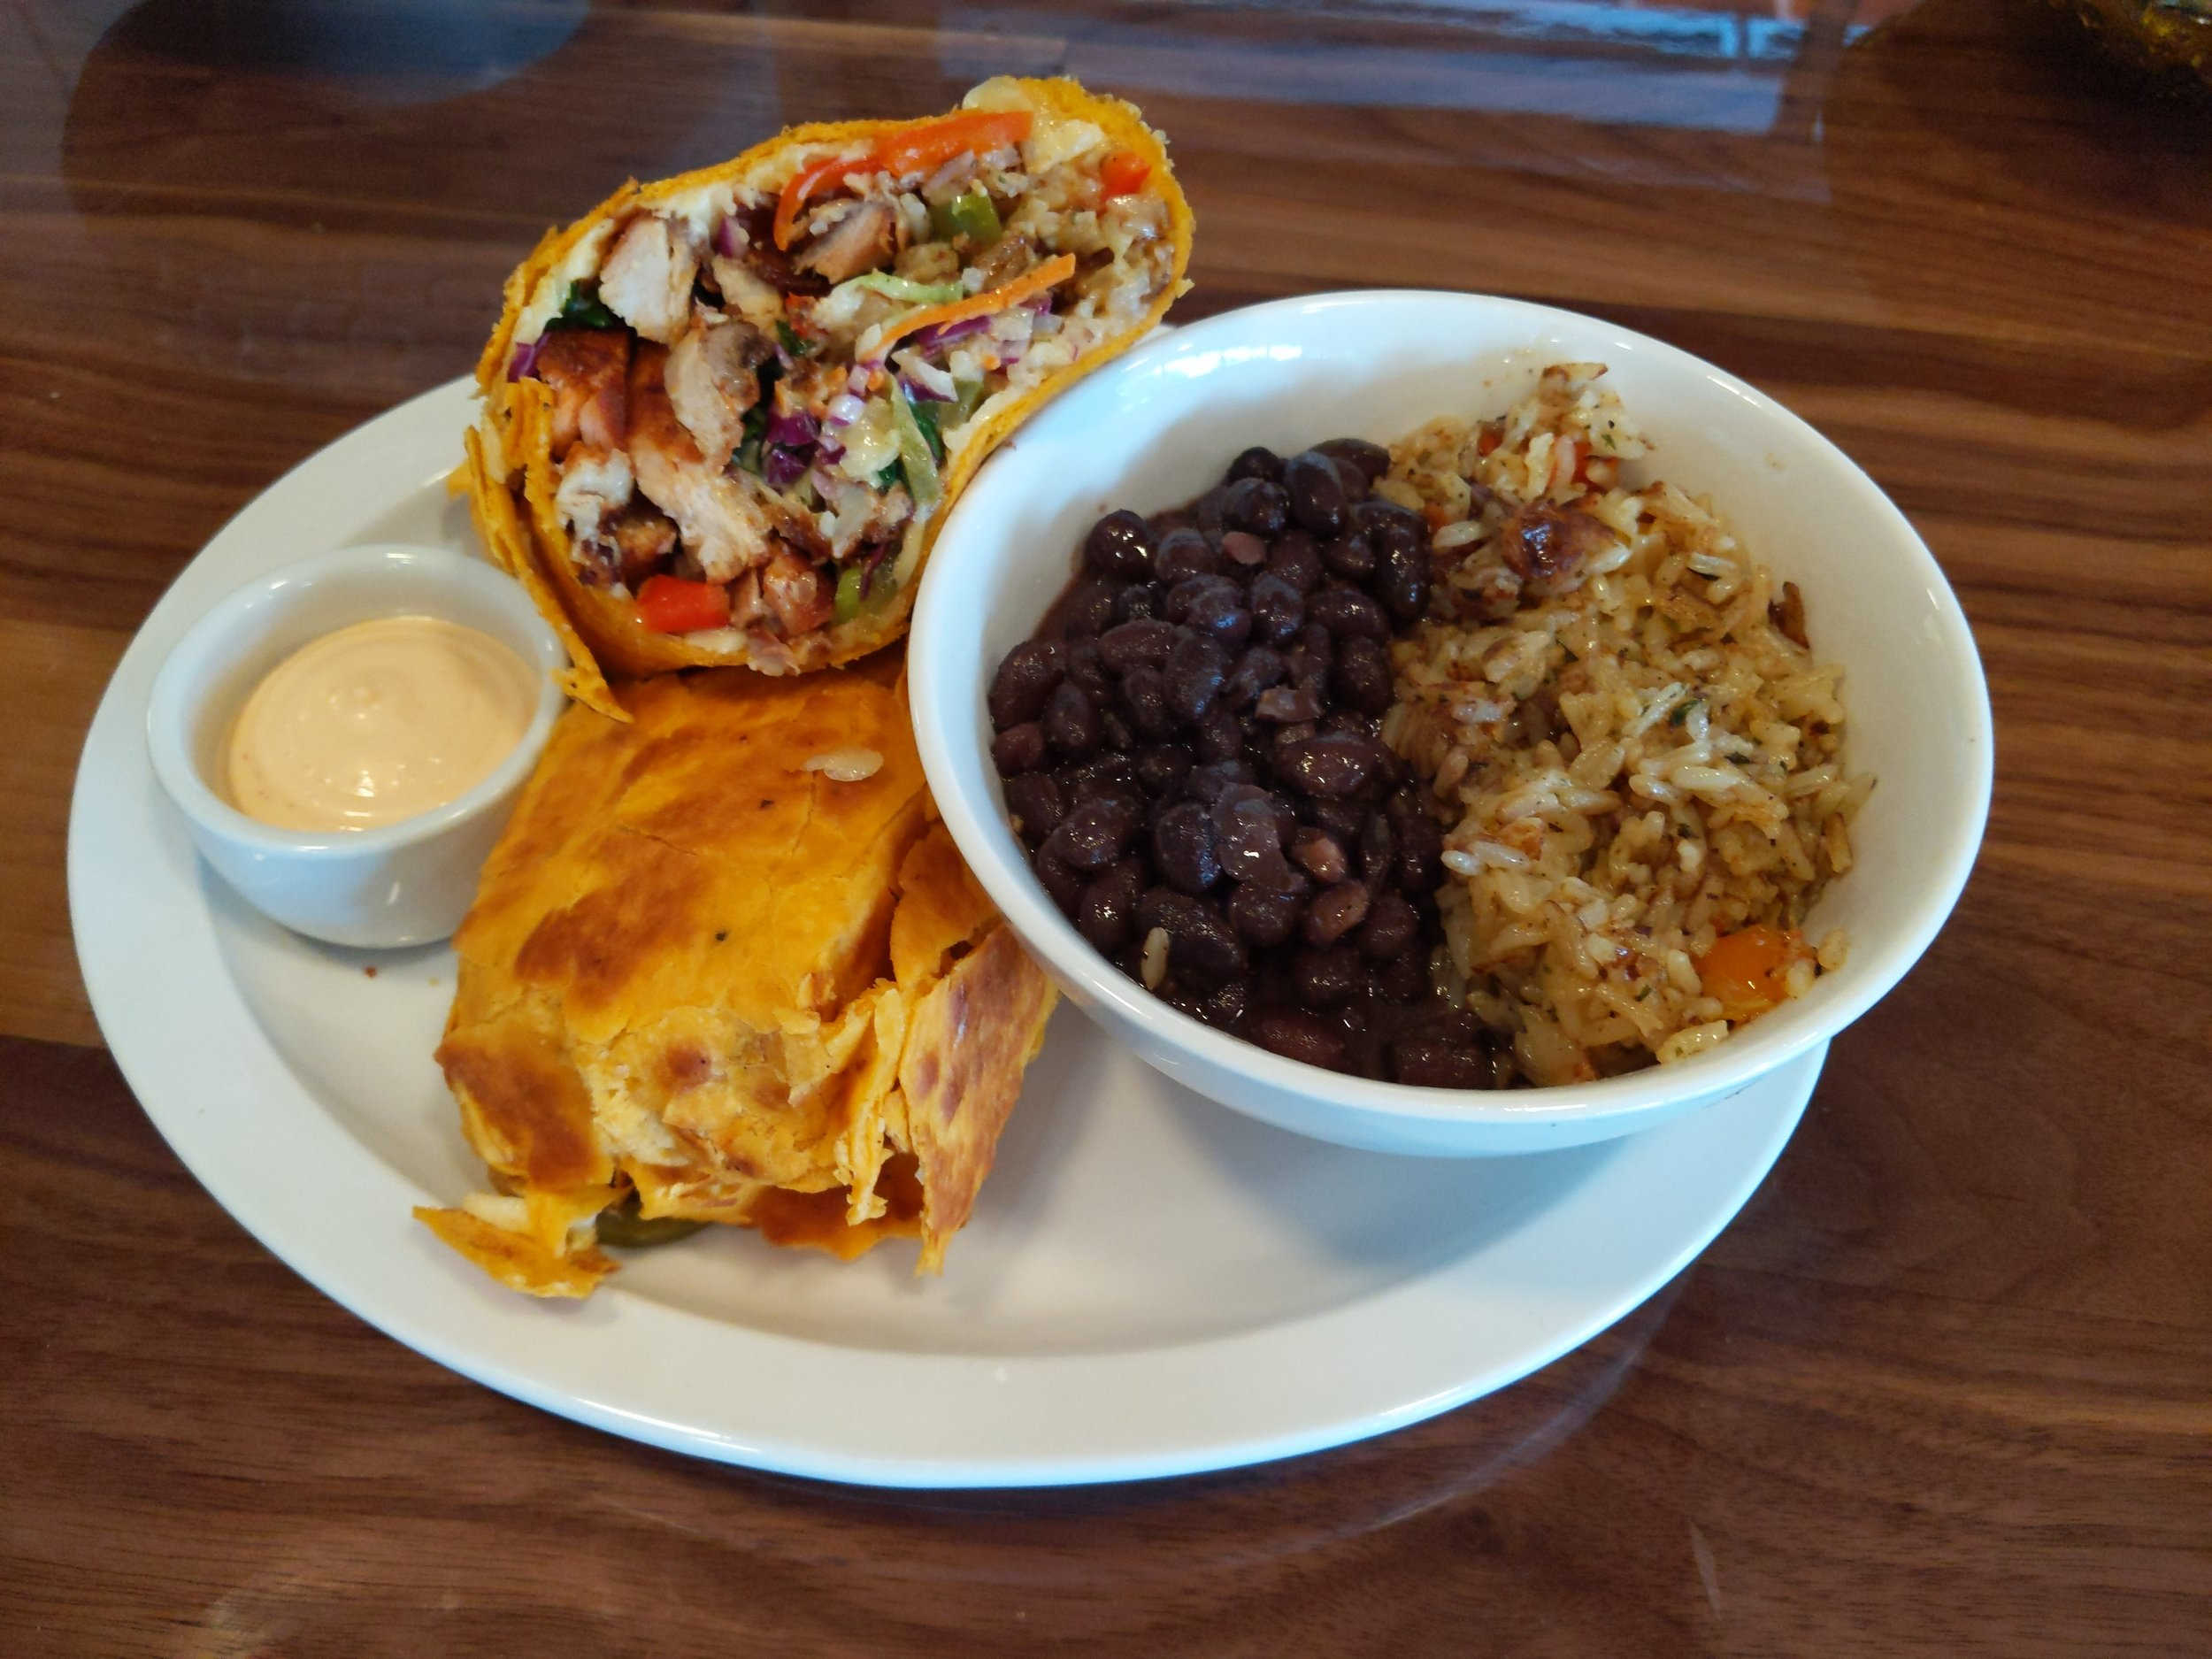 Burrito with Rice & Beans